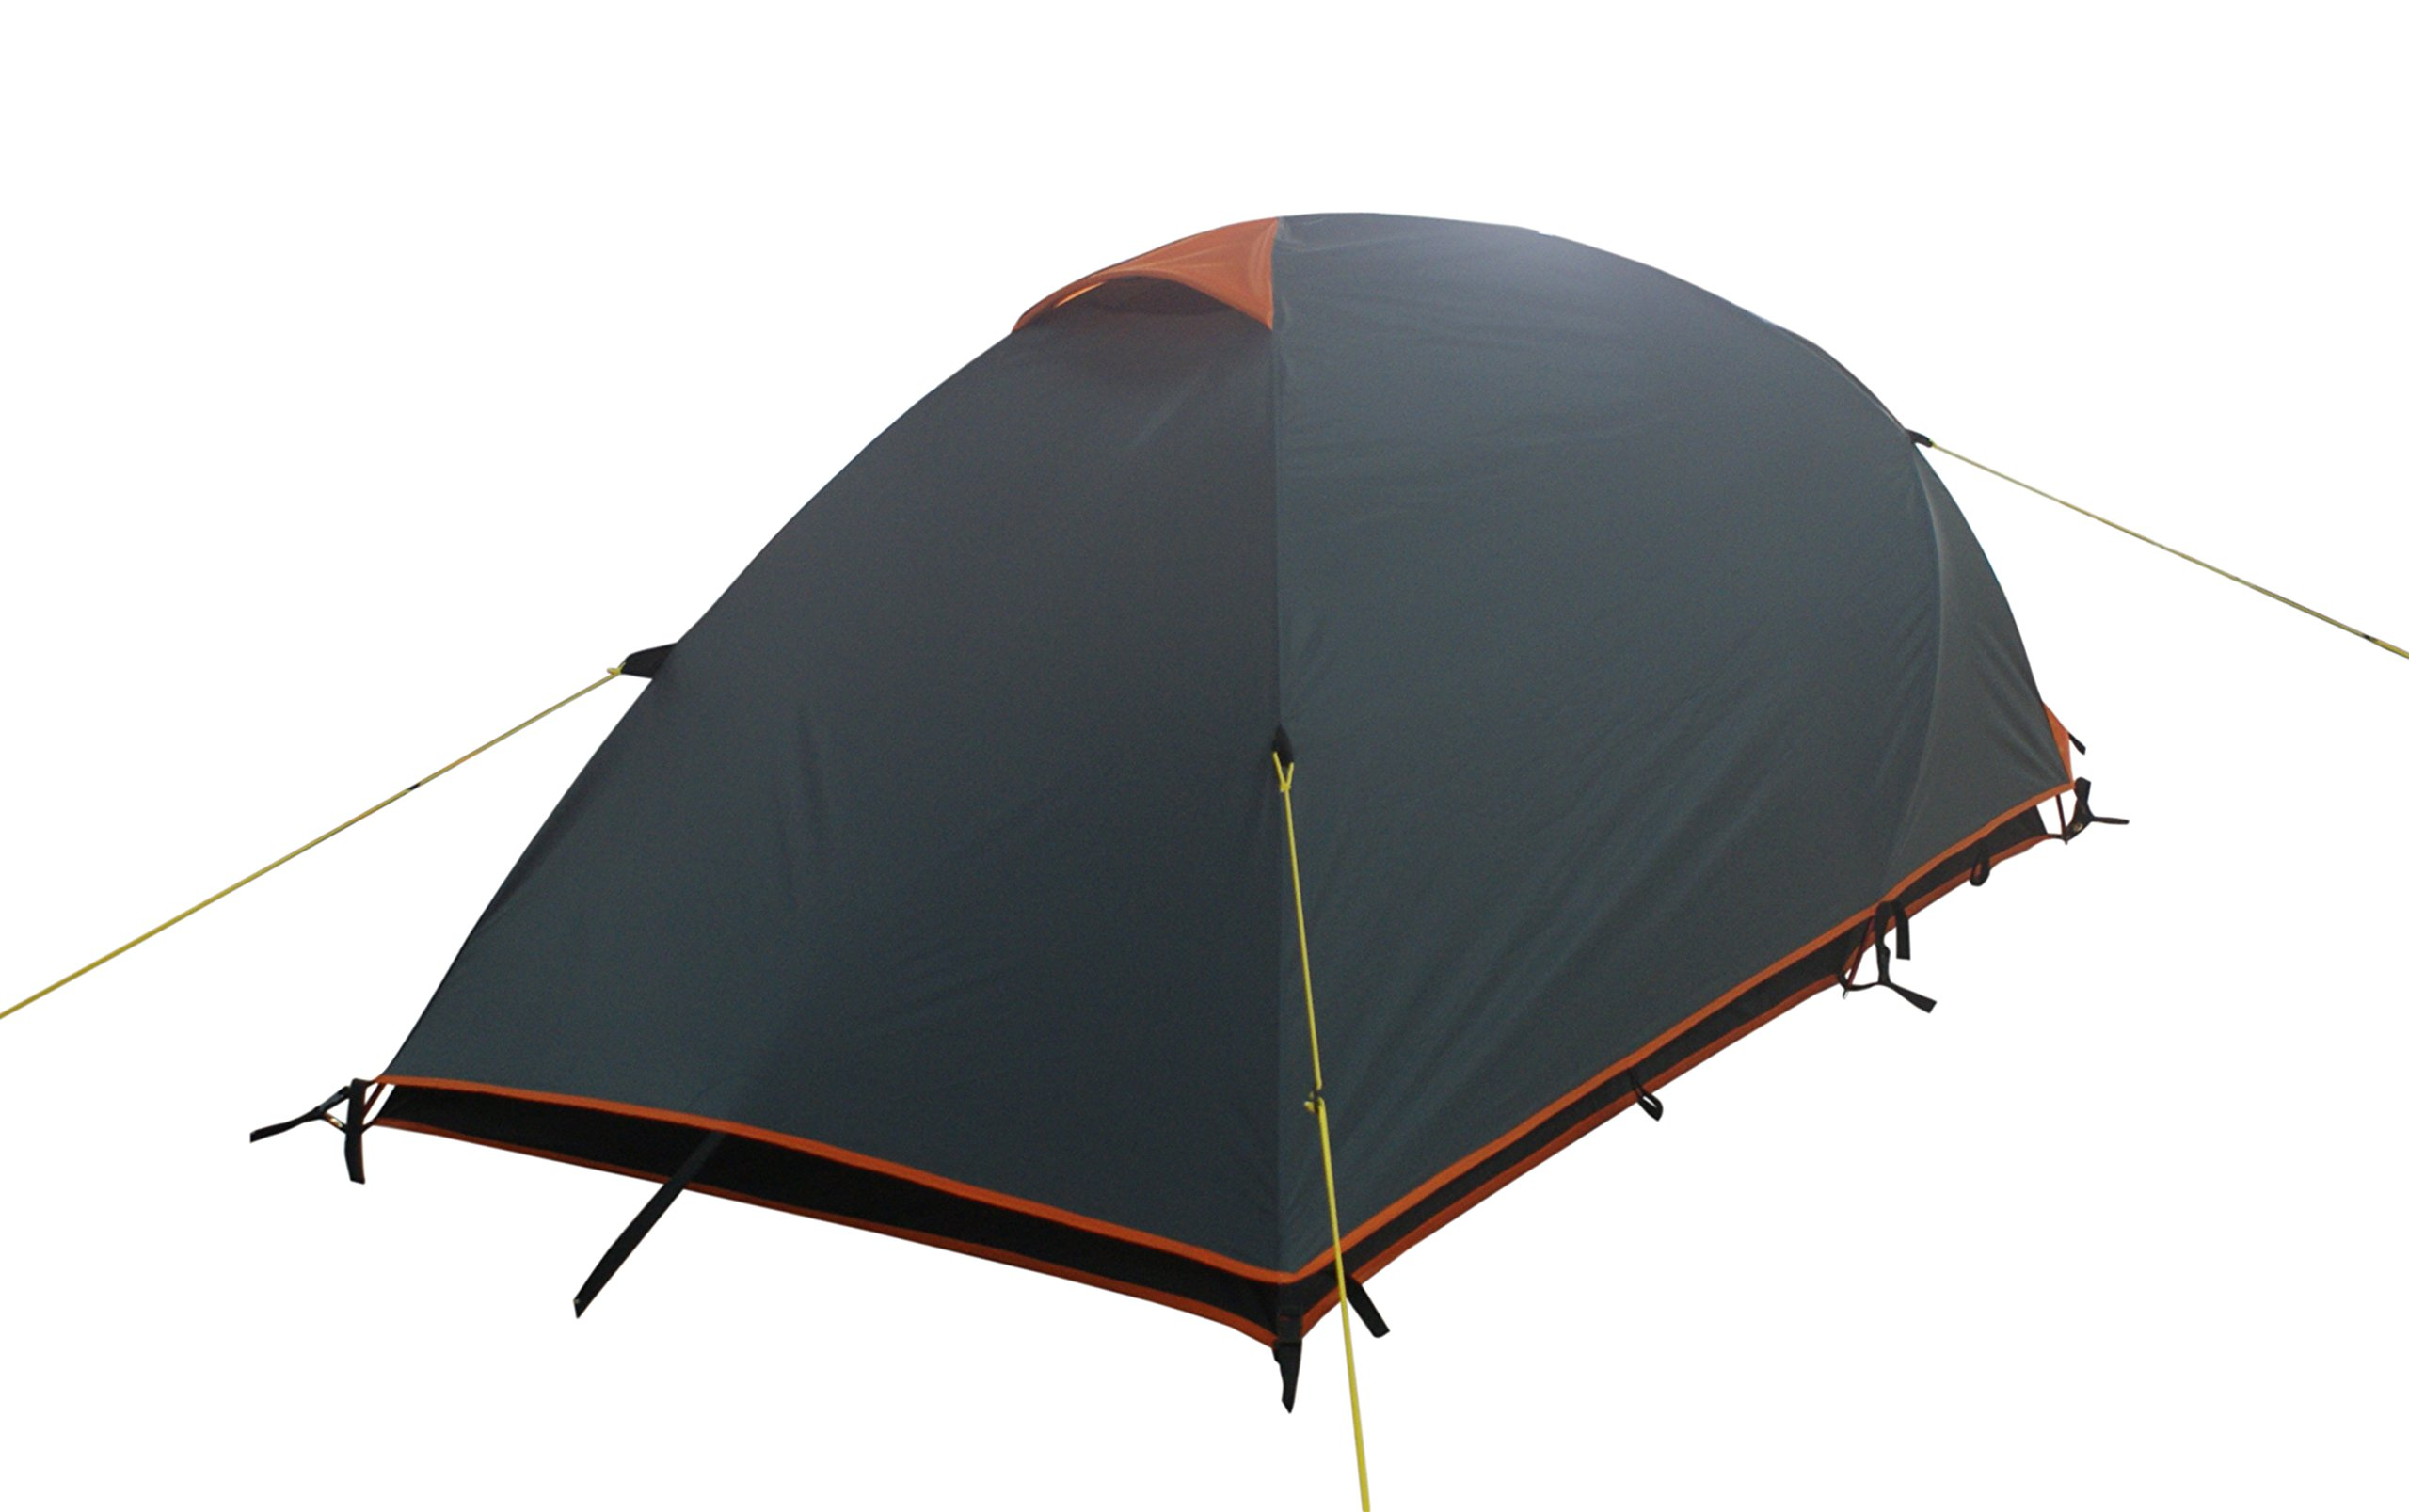 NEW Enduro 2 Person 4 Season Expedition Backpack Tent by High Peak Outdoors (Image #1)